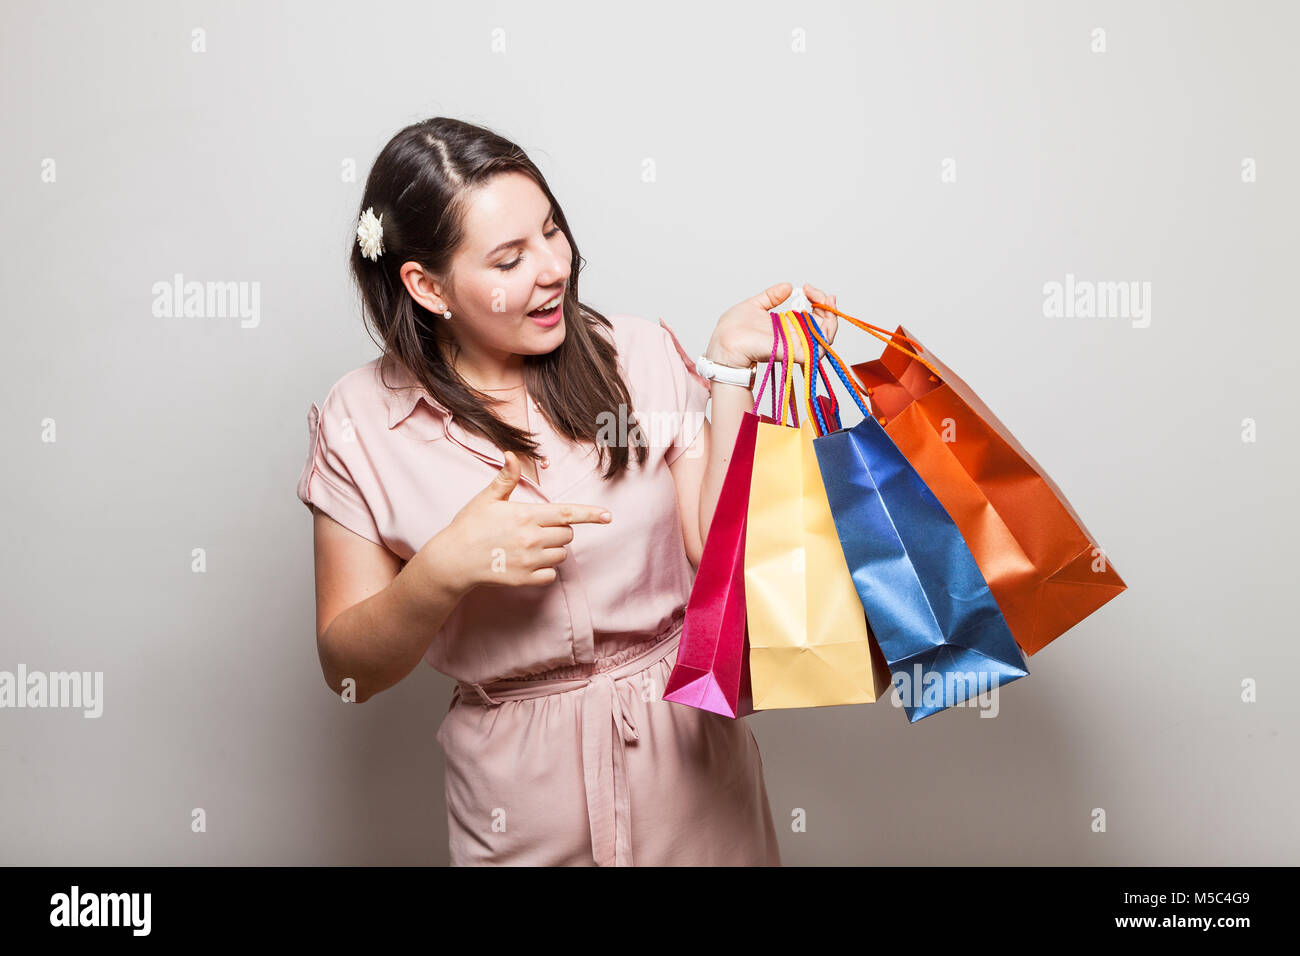 Modern Teenager In A Dress Holds Gift Bags From Her Birthday Party